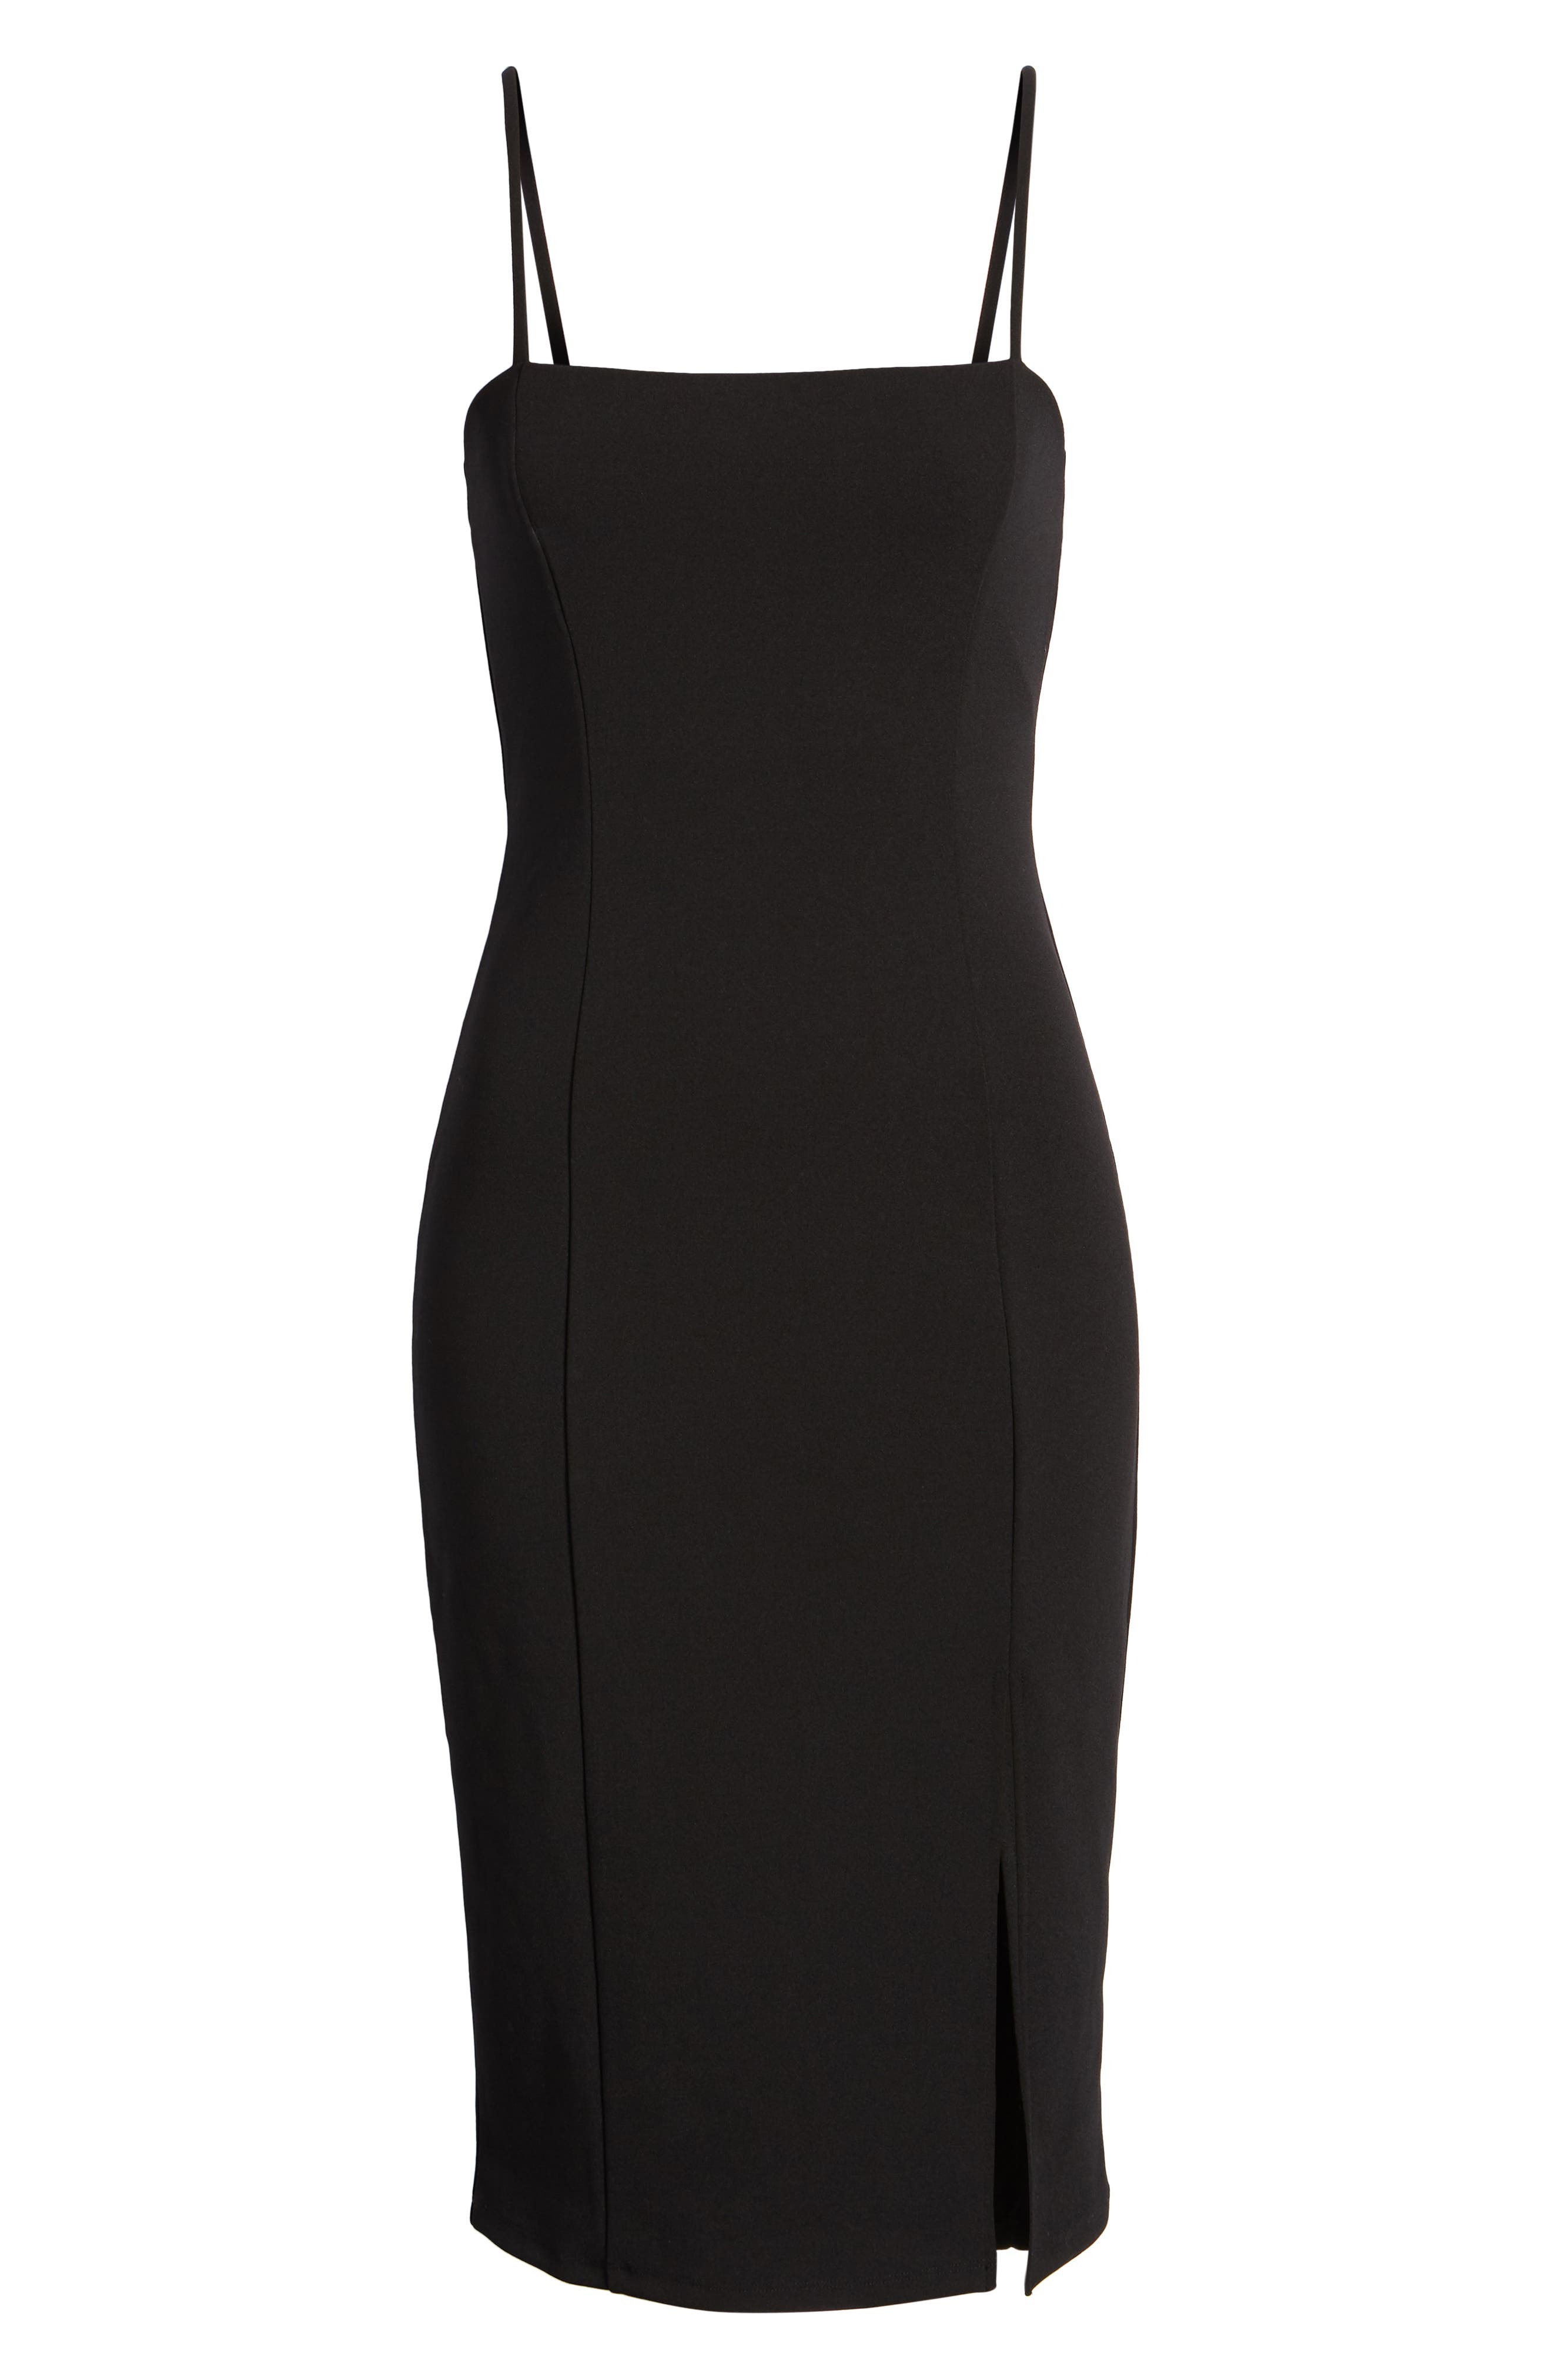 Sheath Dress,                             Alternate thumbnail 7, color,                             001